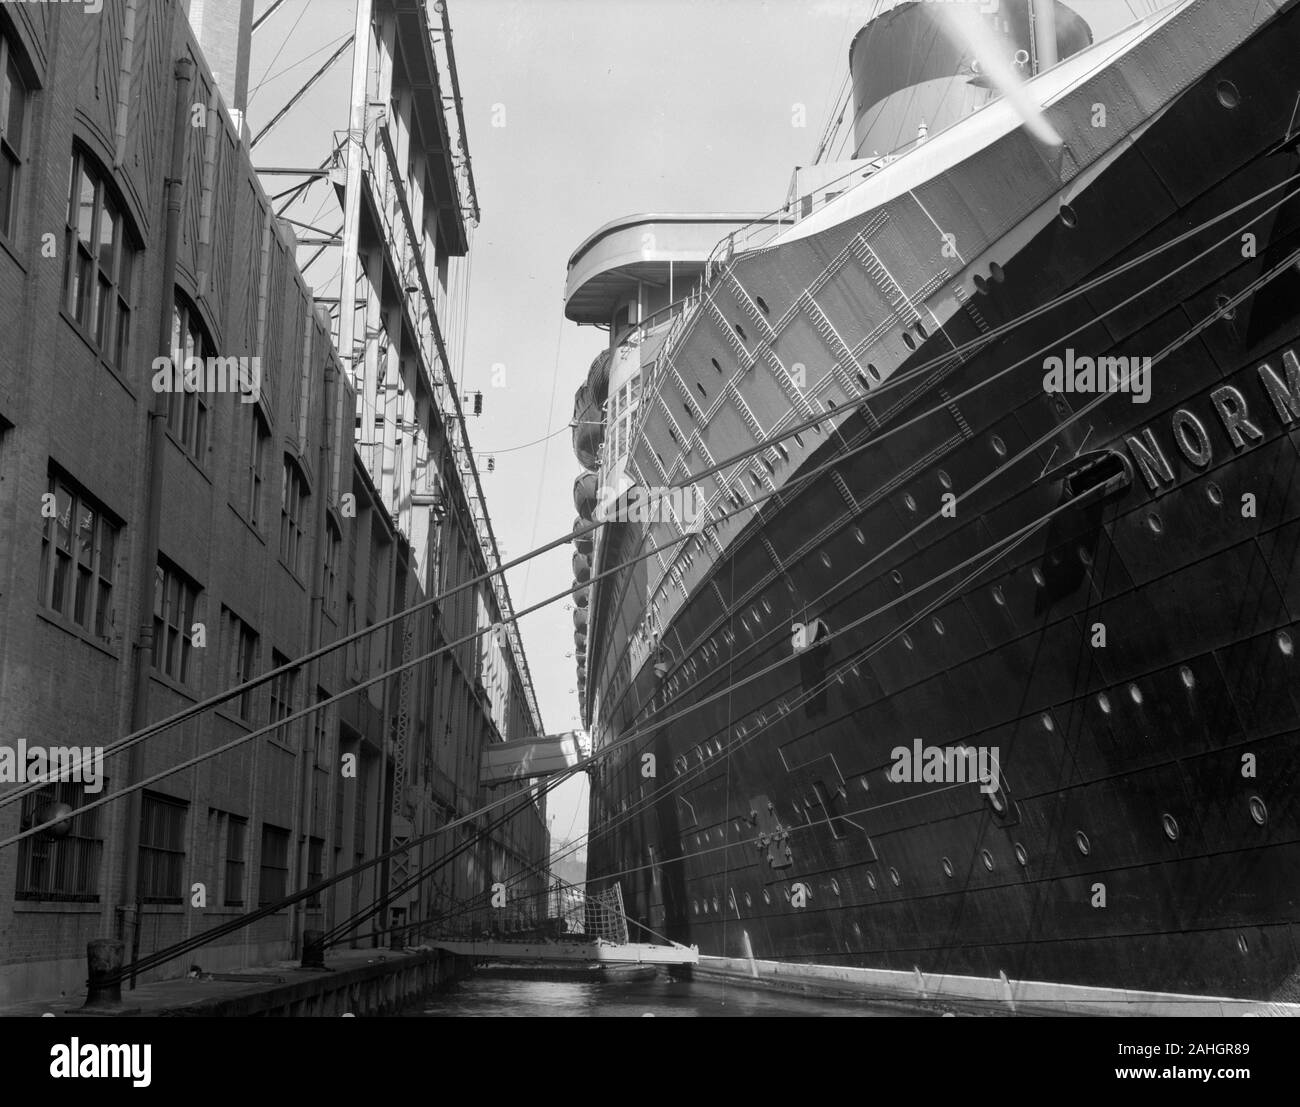 The SS Normandie, at dock in New York, during the process of being refitted to serve as a troop ship in WWII. The date of the photograph is uncertain, but it is clearly prior to the fire that beset the ship in February 1942 Stock Photo